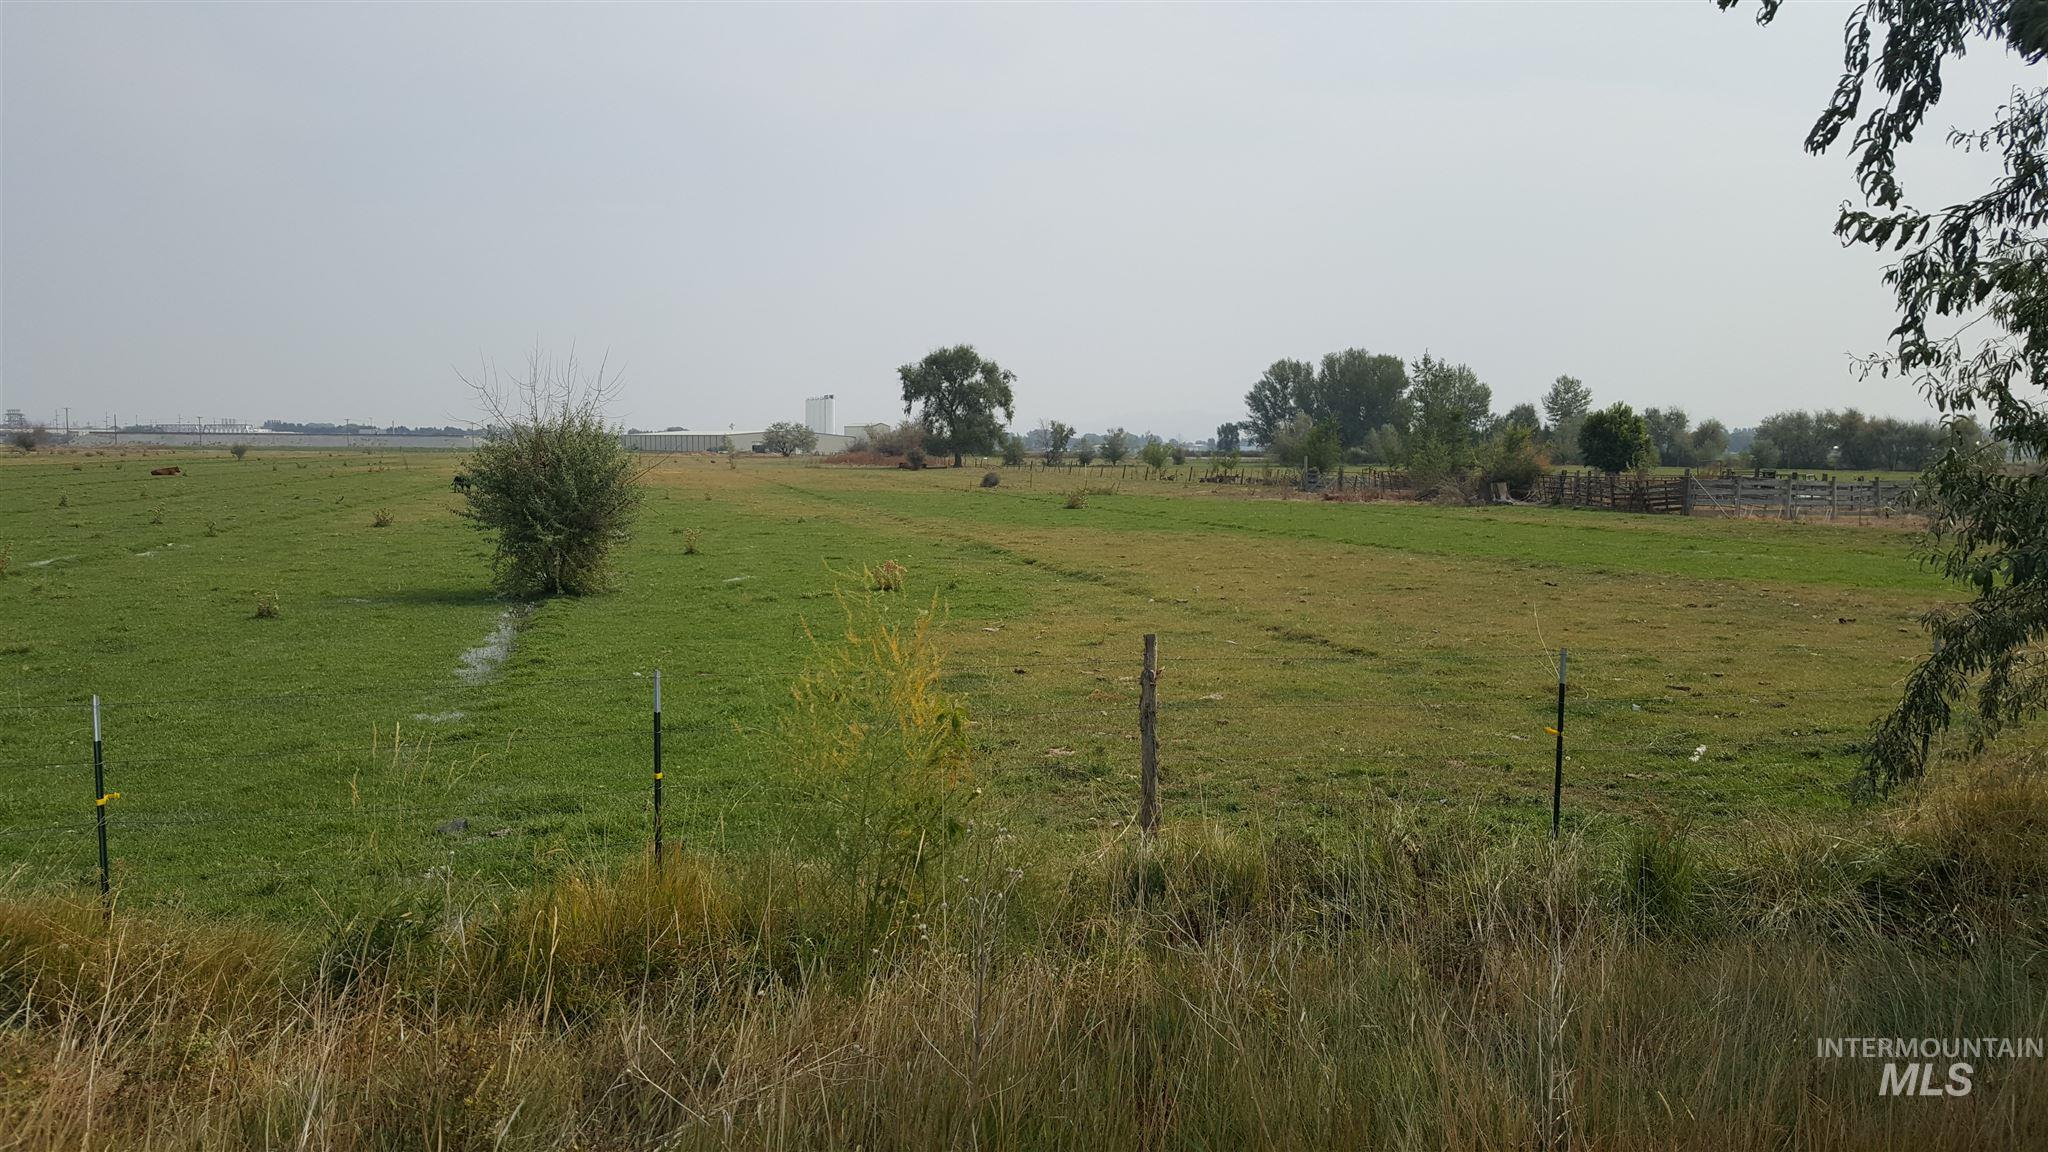 100 N 75 East, Burley, Idaho 83318, Land For Sale, Price $1,000,000, 98781742